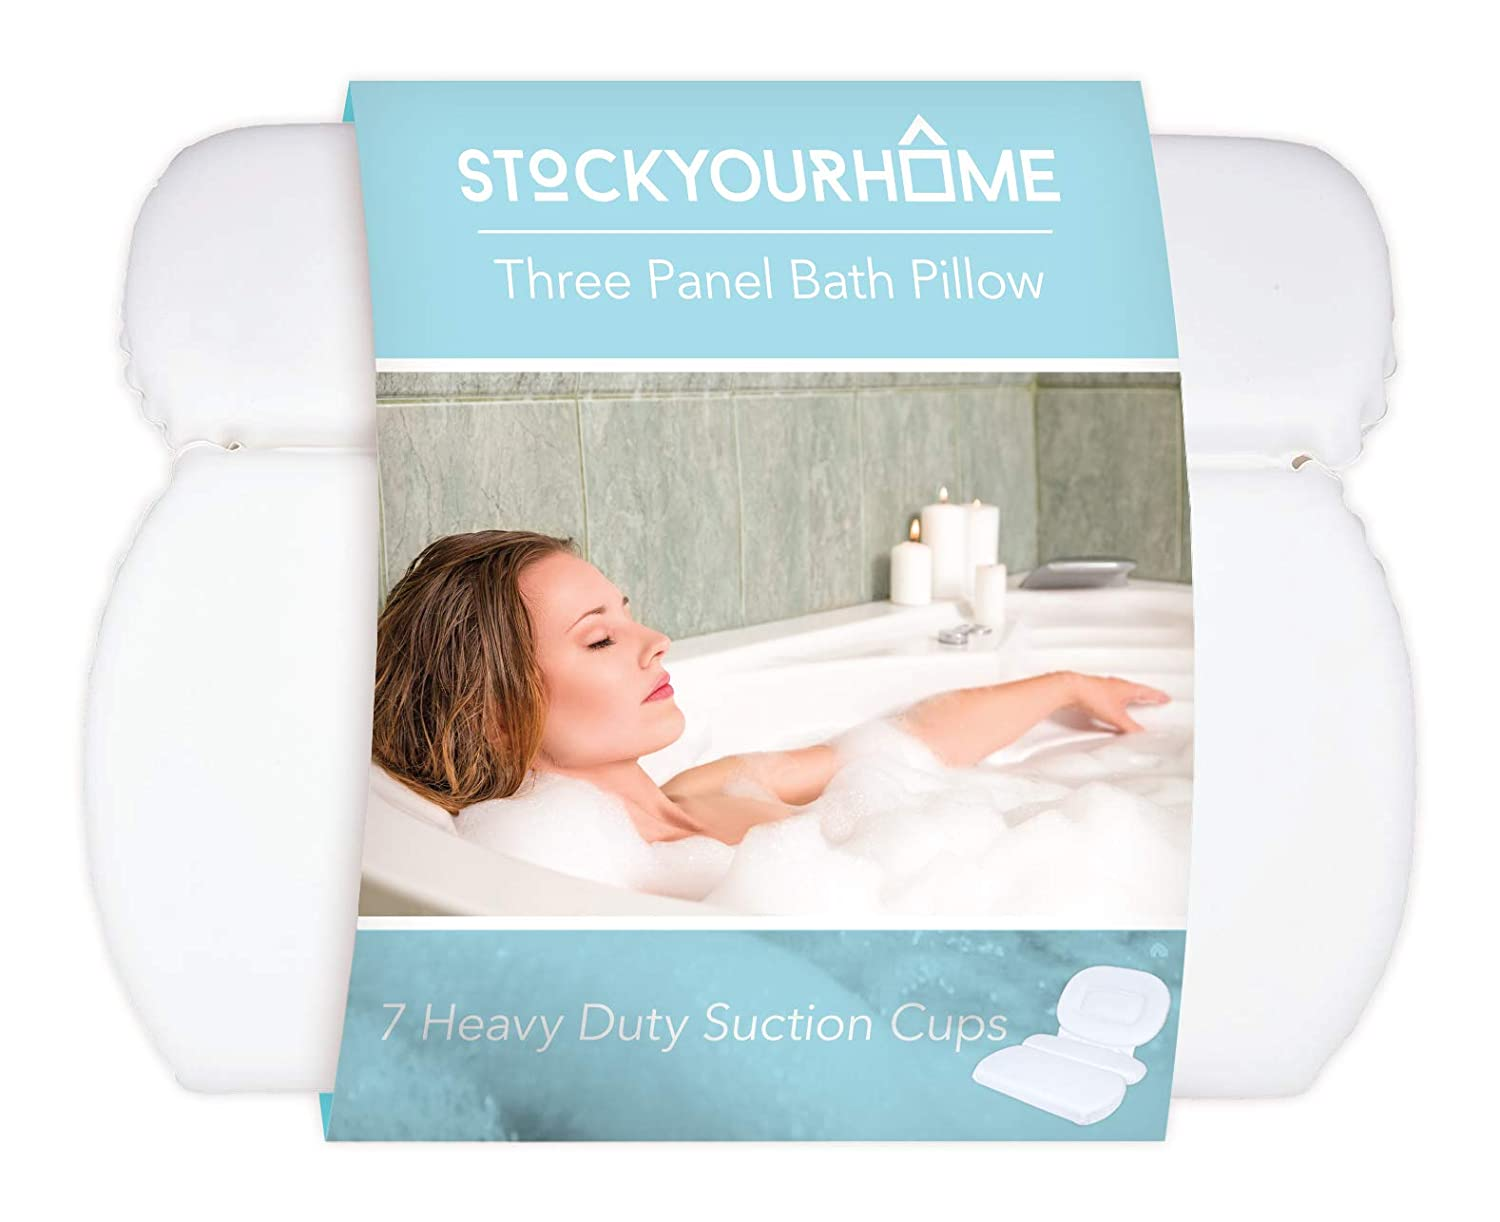 Stock Your Home Luxury Spa Bath Pillow Mat Features 3 Panel, Nonslip Jacuzzi Pillow with Removable Suction Cups and Extra Thick Foam Cushion Providing Head, Neck & Back Support for Ultimate Relaxation Richards 200702 L